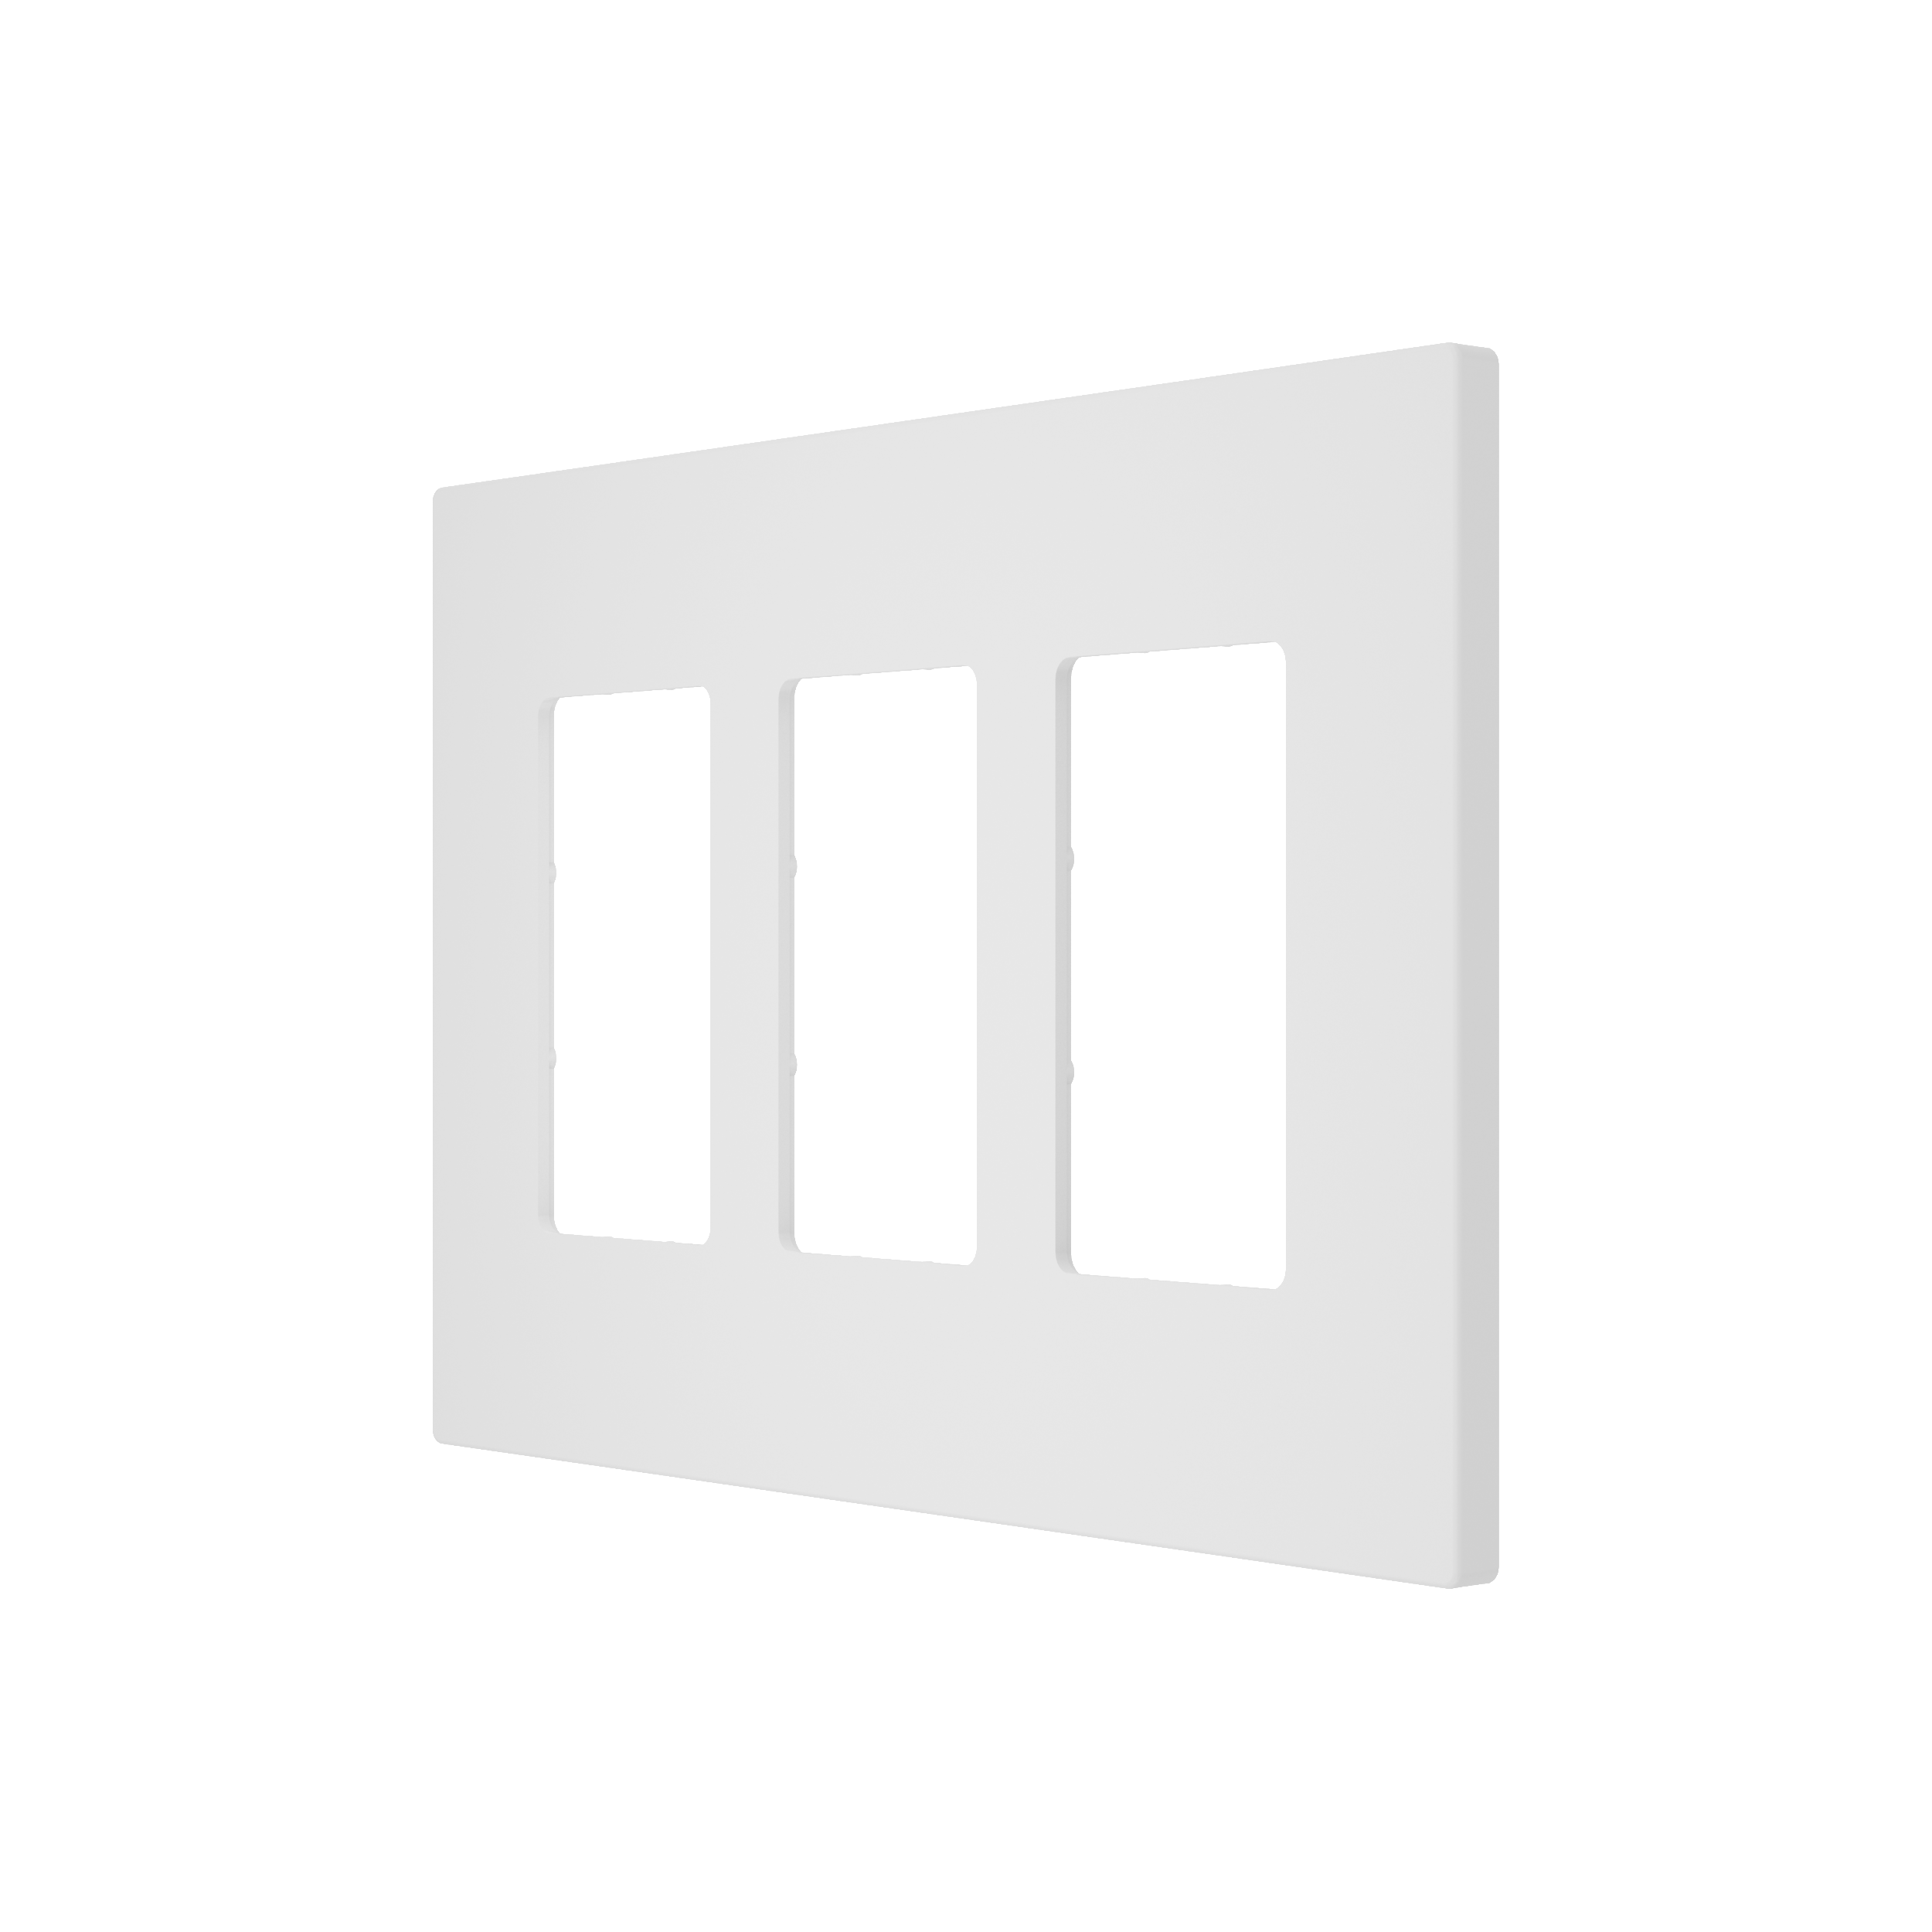 Wall Plate (3-Gang) 02.png